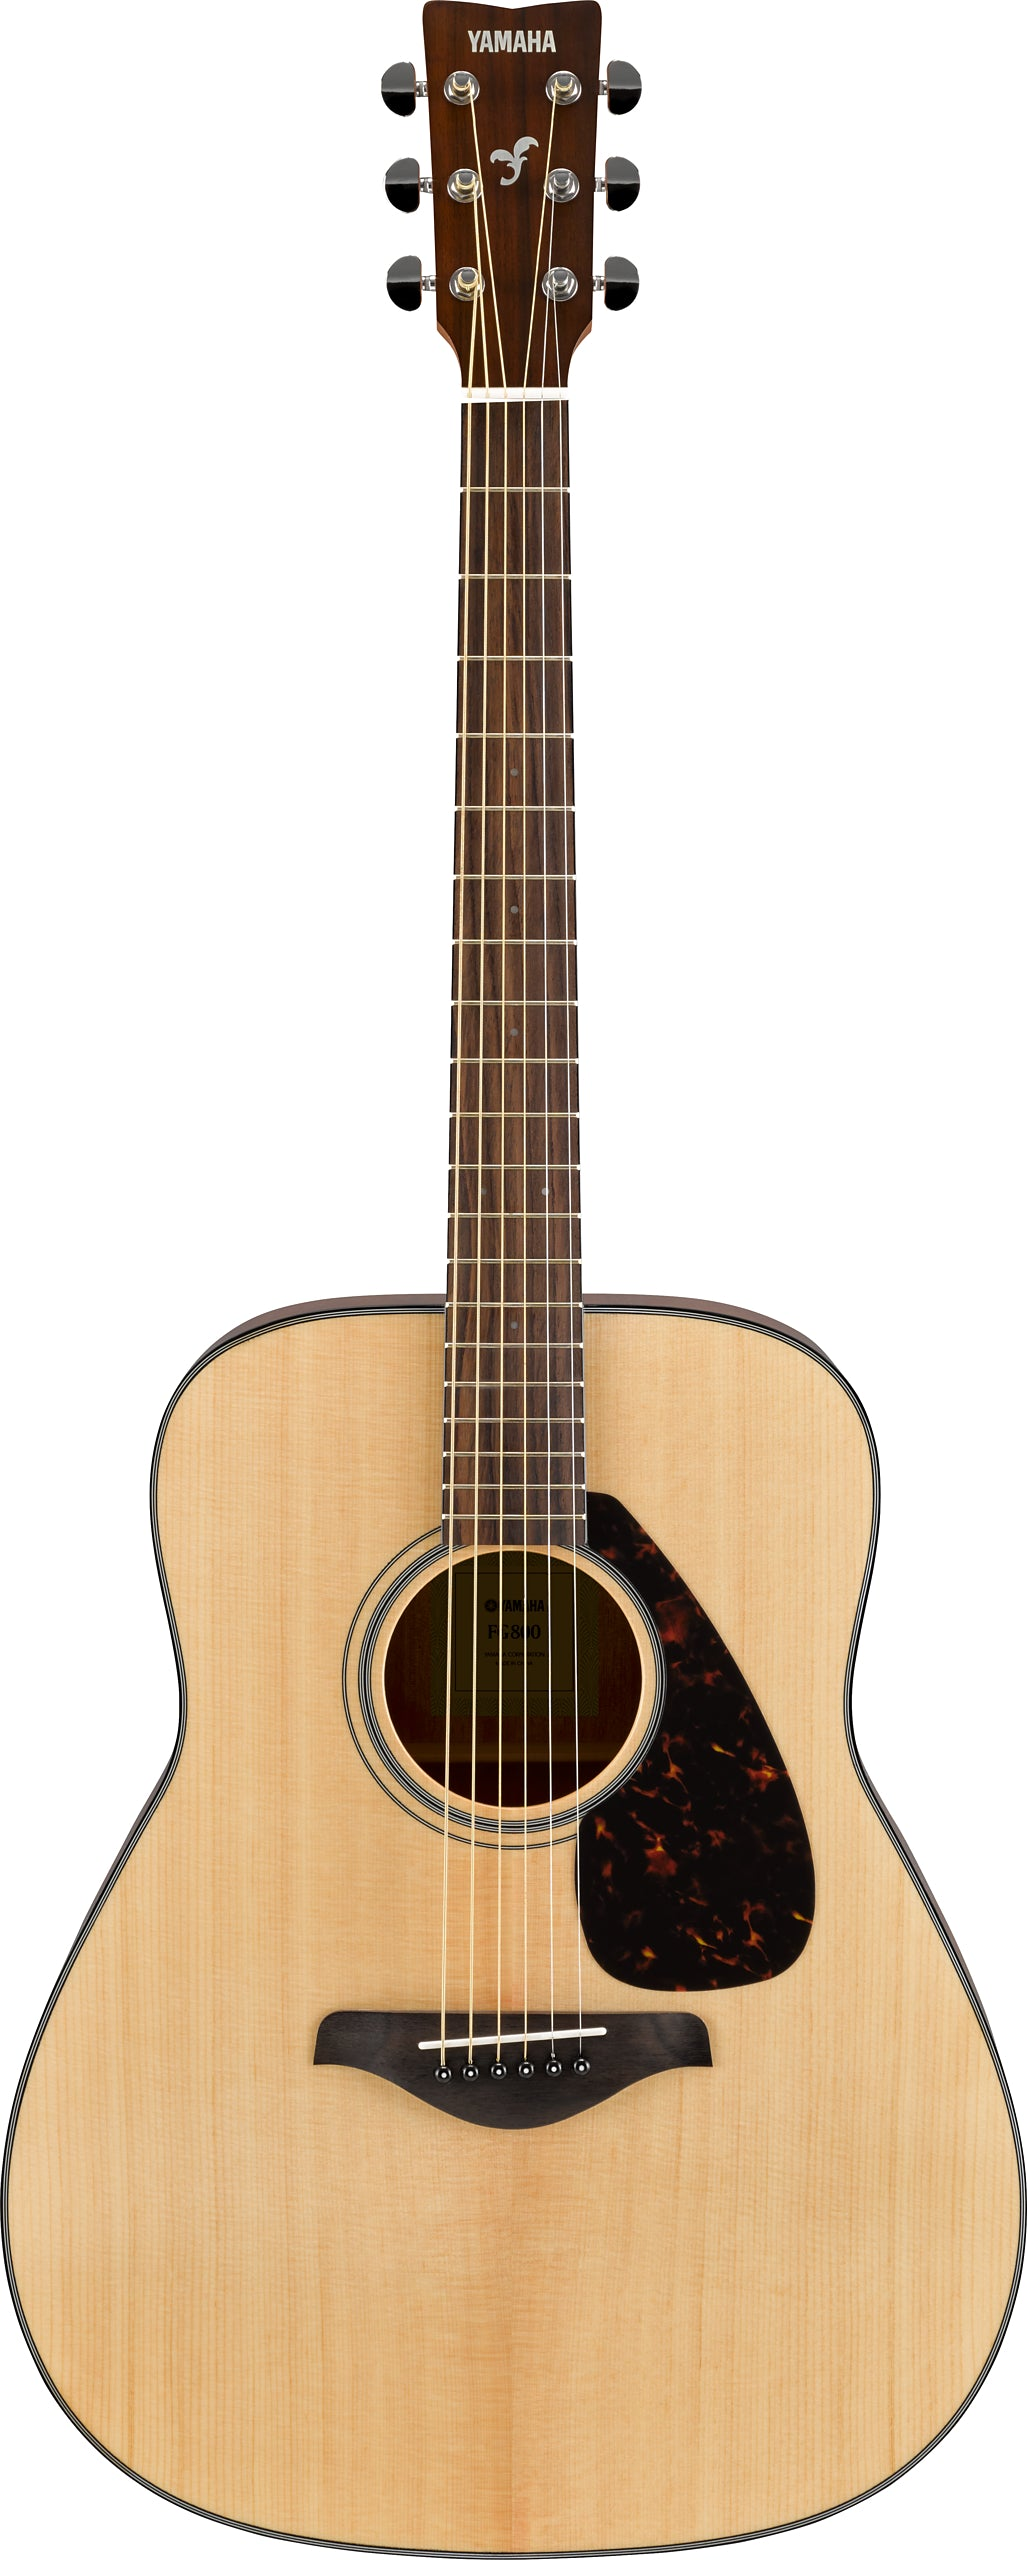 Yamaha FG800 Acoustic Guitar - Natural